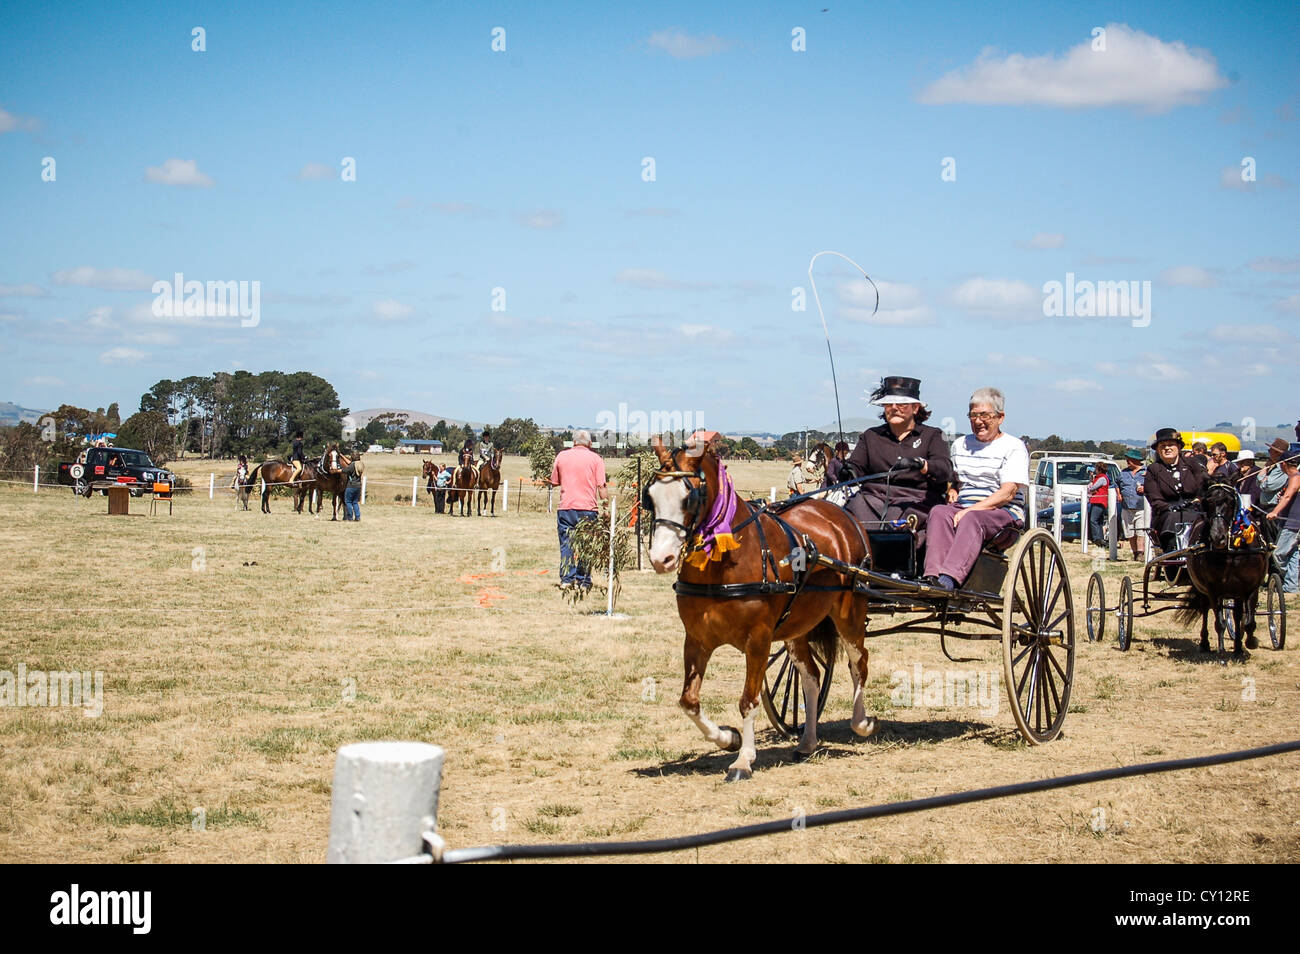 Horses and carts in competition at annual Clunes Show in rural town of Clunes, Country Victoria, Australia. - Stock Image